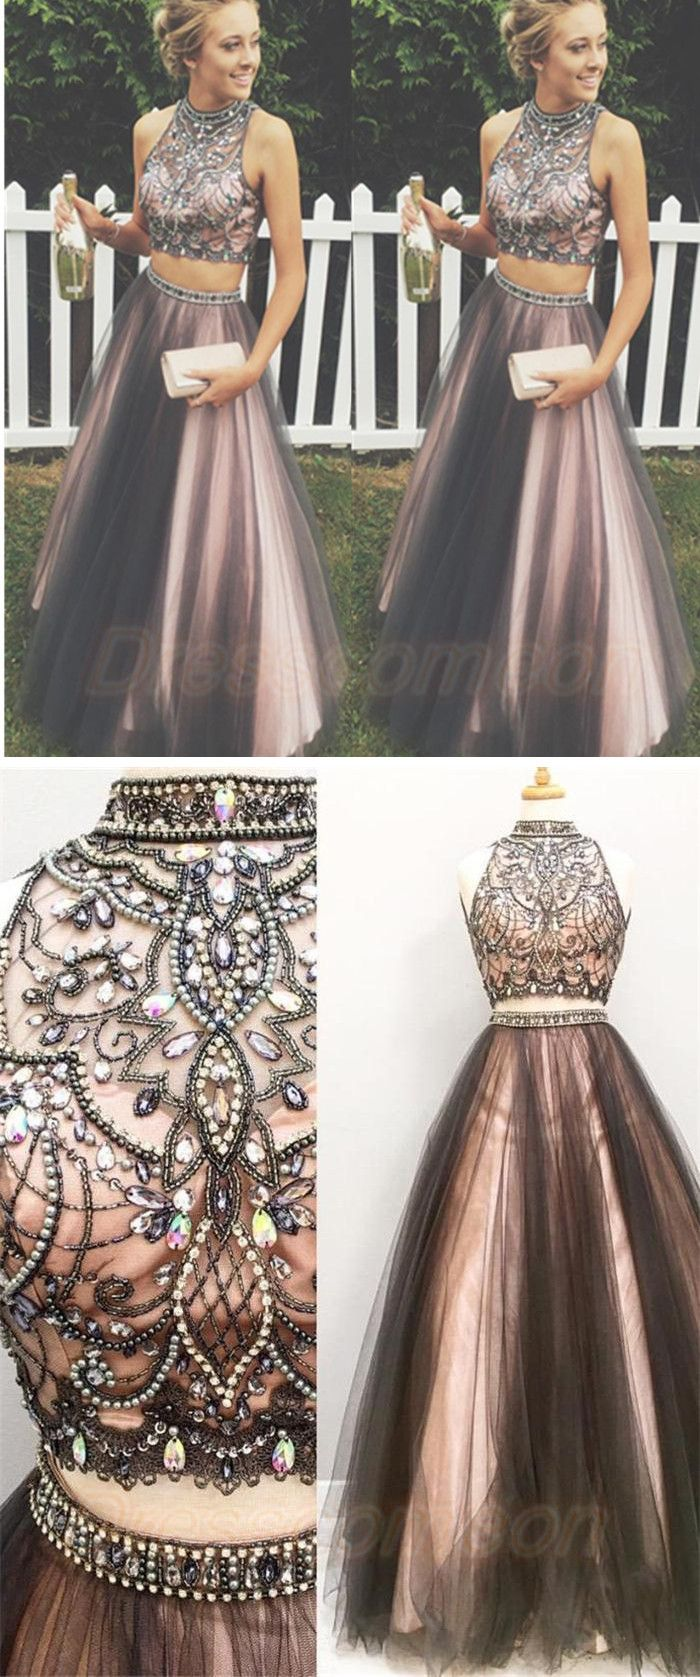 Prom Dress,Party Dresses,Graduation Dresses,Sweet 16 Dress,Women Dresses,Prom Dresses For Teens,Modest Prom Dresses,Prom Dresses 2017,Plus Size Prom Dresses, Two Pieces Prom Dresses,A-line Tulle Prom Gowns,Halter Beading Evening Dresses,Beautiful Party Dresses,Cute Dress